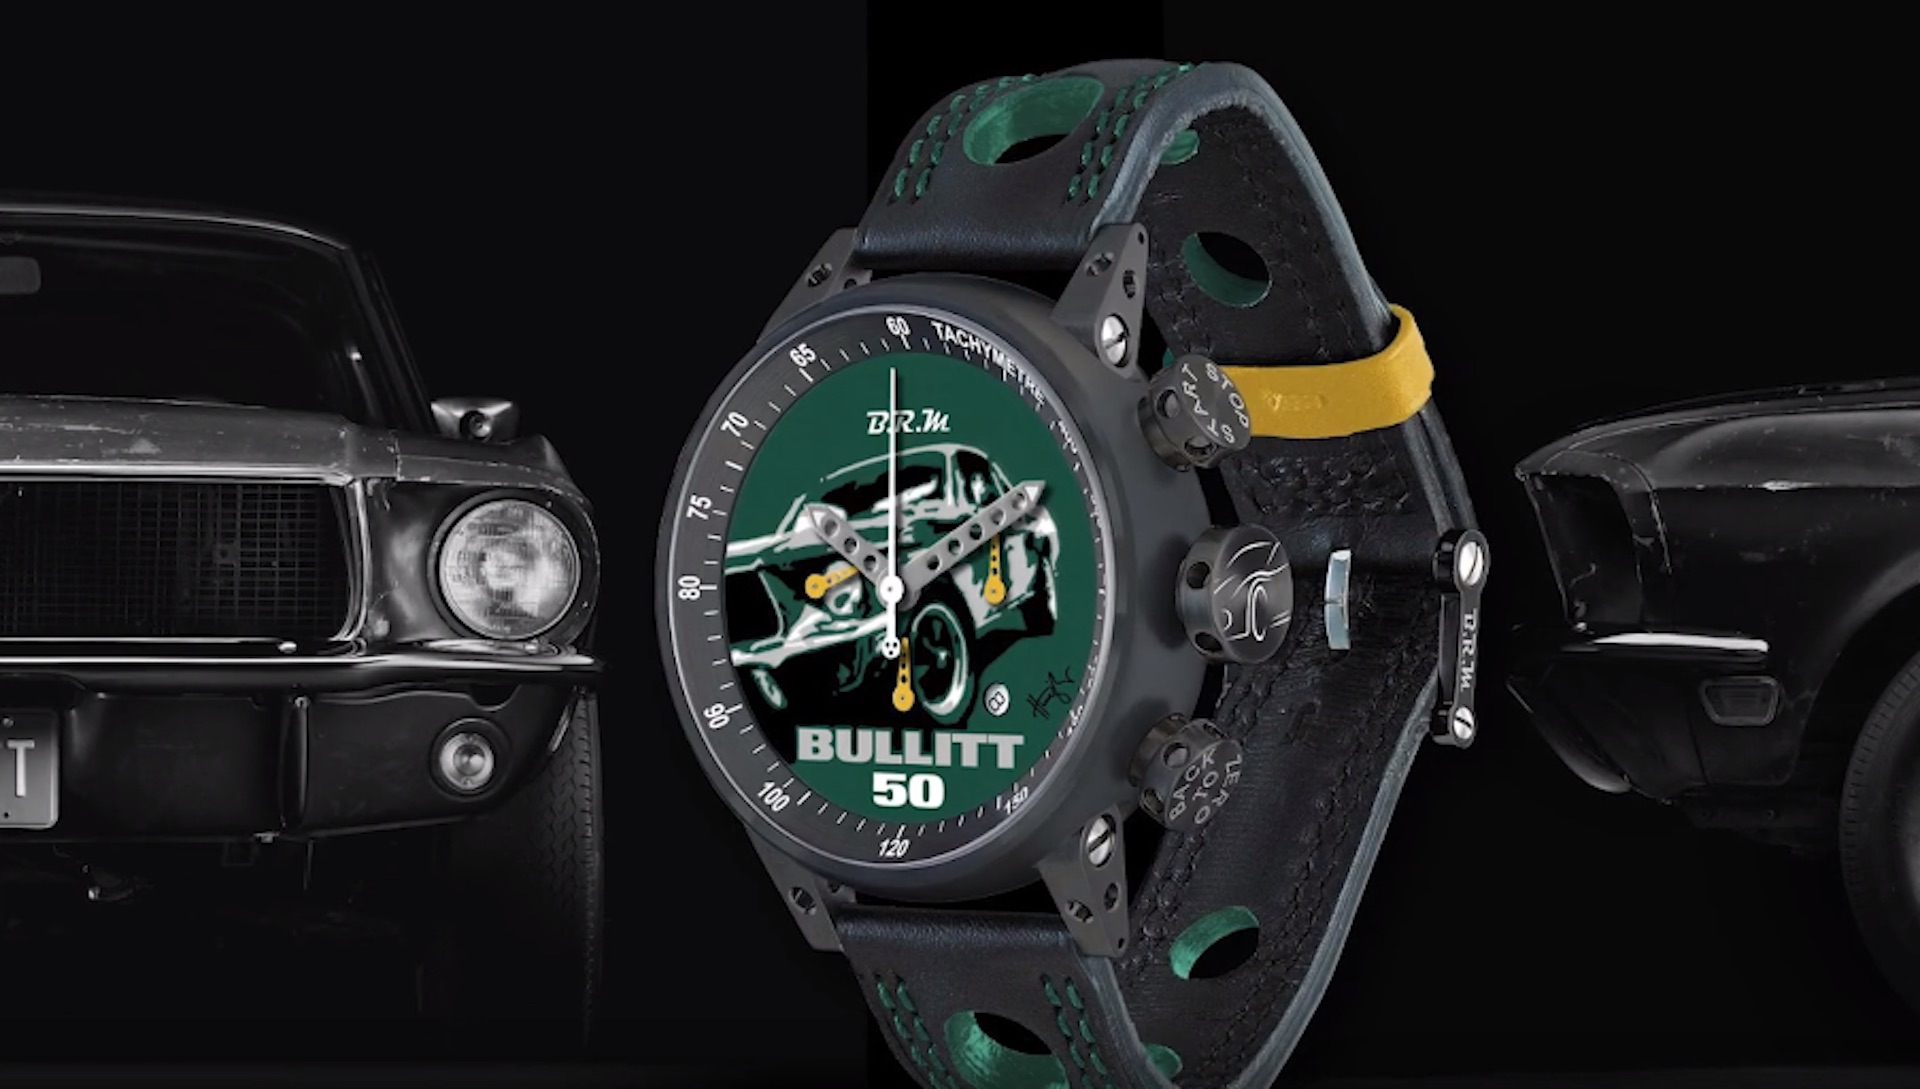 One of a kind watch with paint from original bullitt ford mustang to be raffled for charity